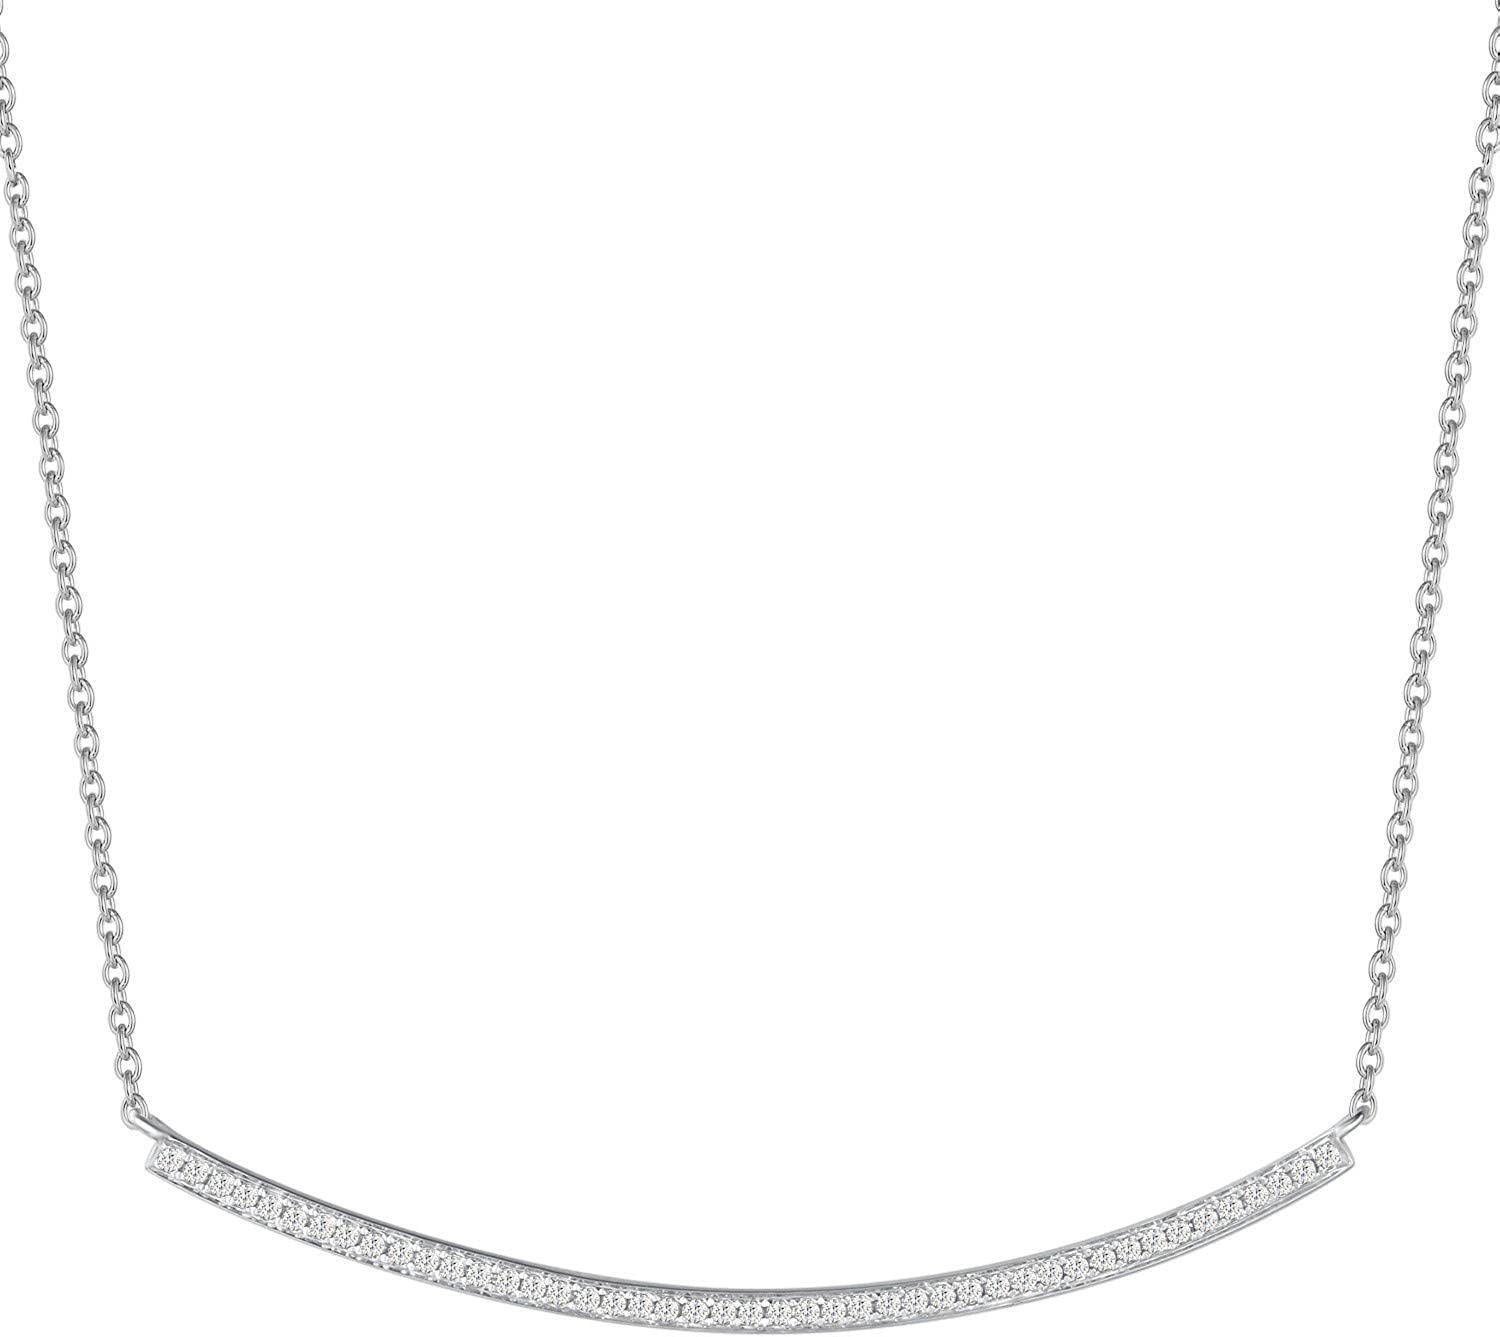 AGVANA 14K Solid White Gold Slender Curved Bar Smile Necklace for Women Round White Diamond Classic Basic Fine Jewelry for Girls Her Wife, 16+1.2 Inch Extender